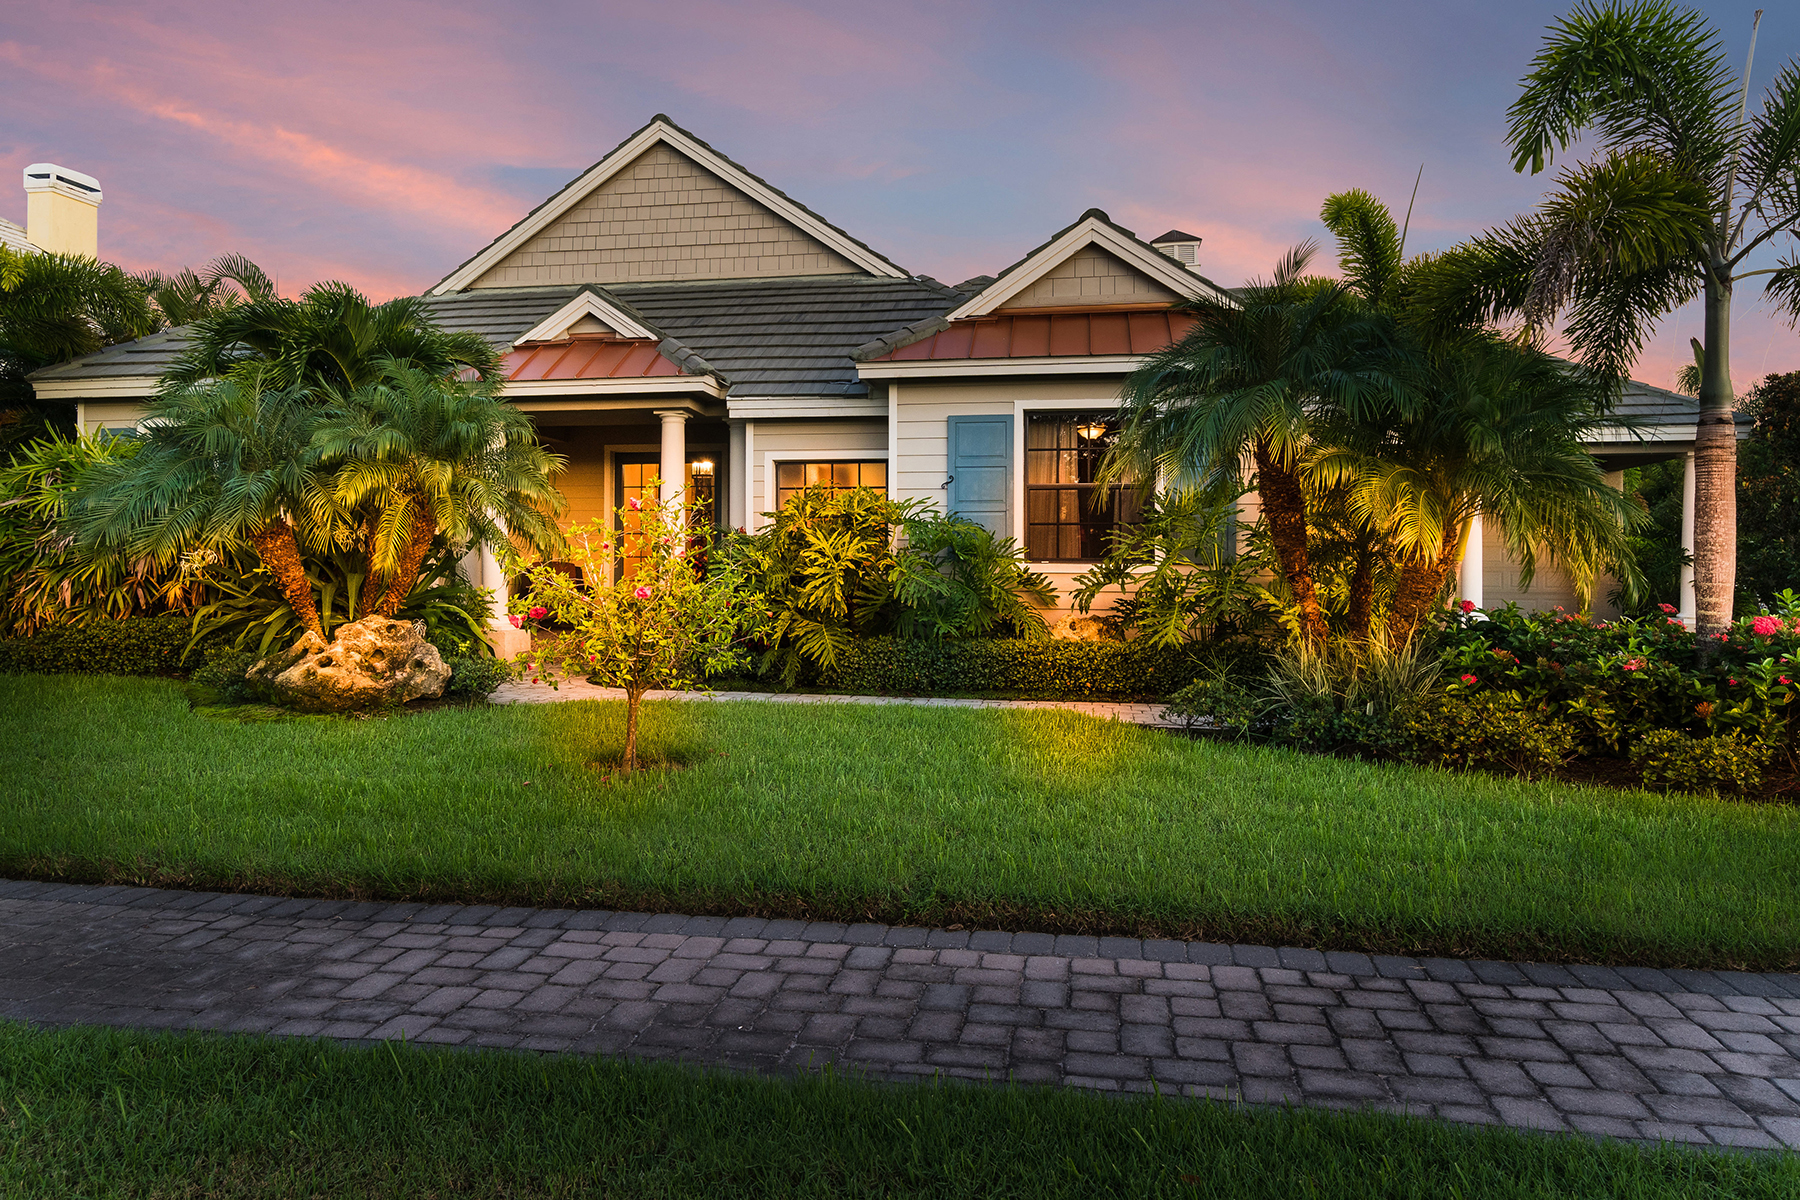 Single Family Home for Sale at HARBOUR WALK AT THE INLETS 537 Fore Dr Bradenton, Florida, 34208 United States